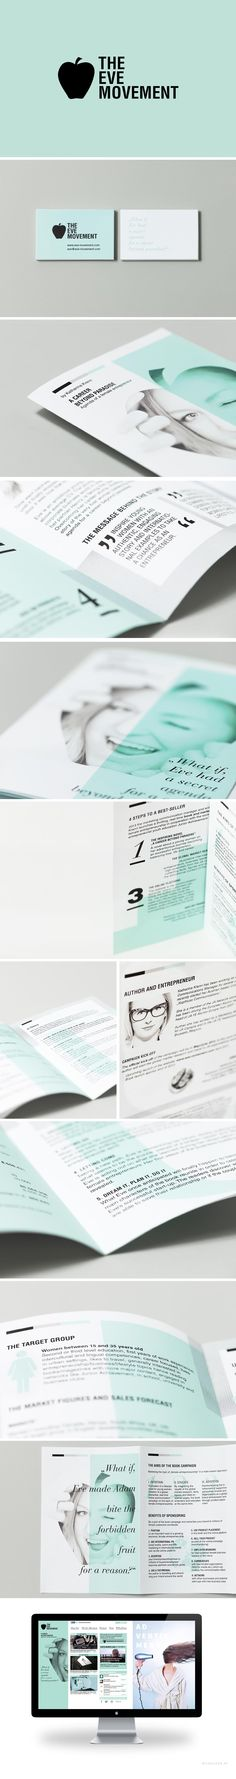 """Corporate Design for Katharina Krenn and the """"Eve Movement"""" by Nicouleur"""